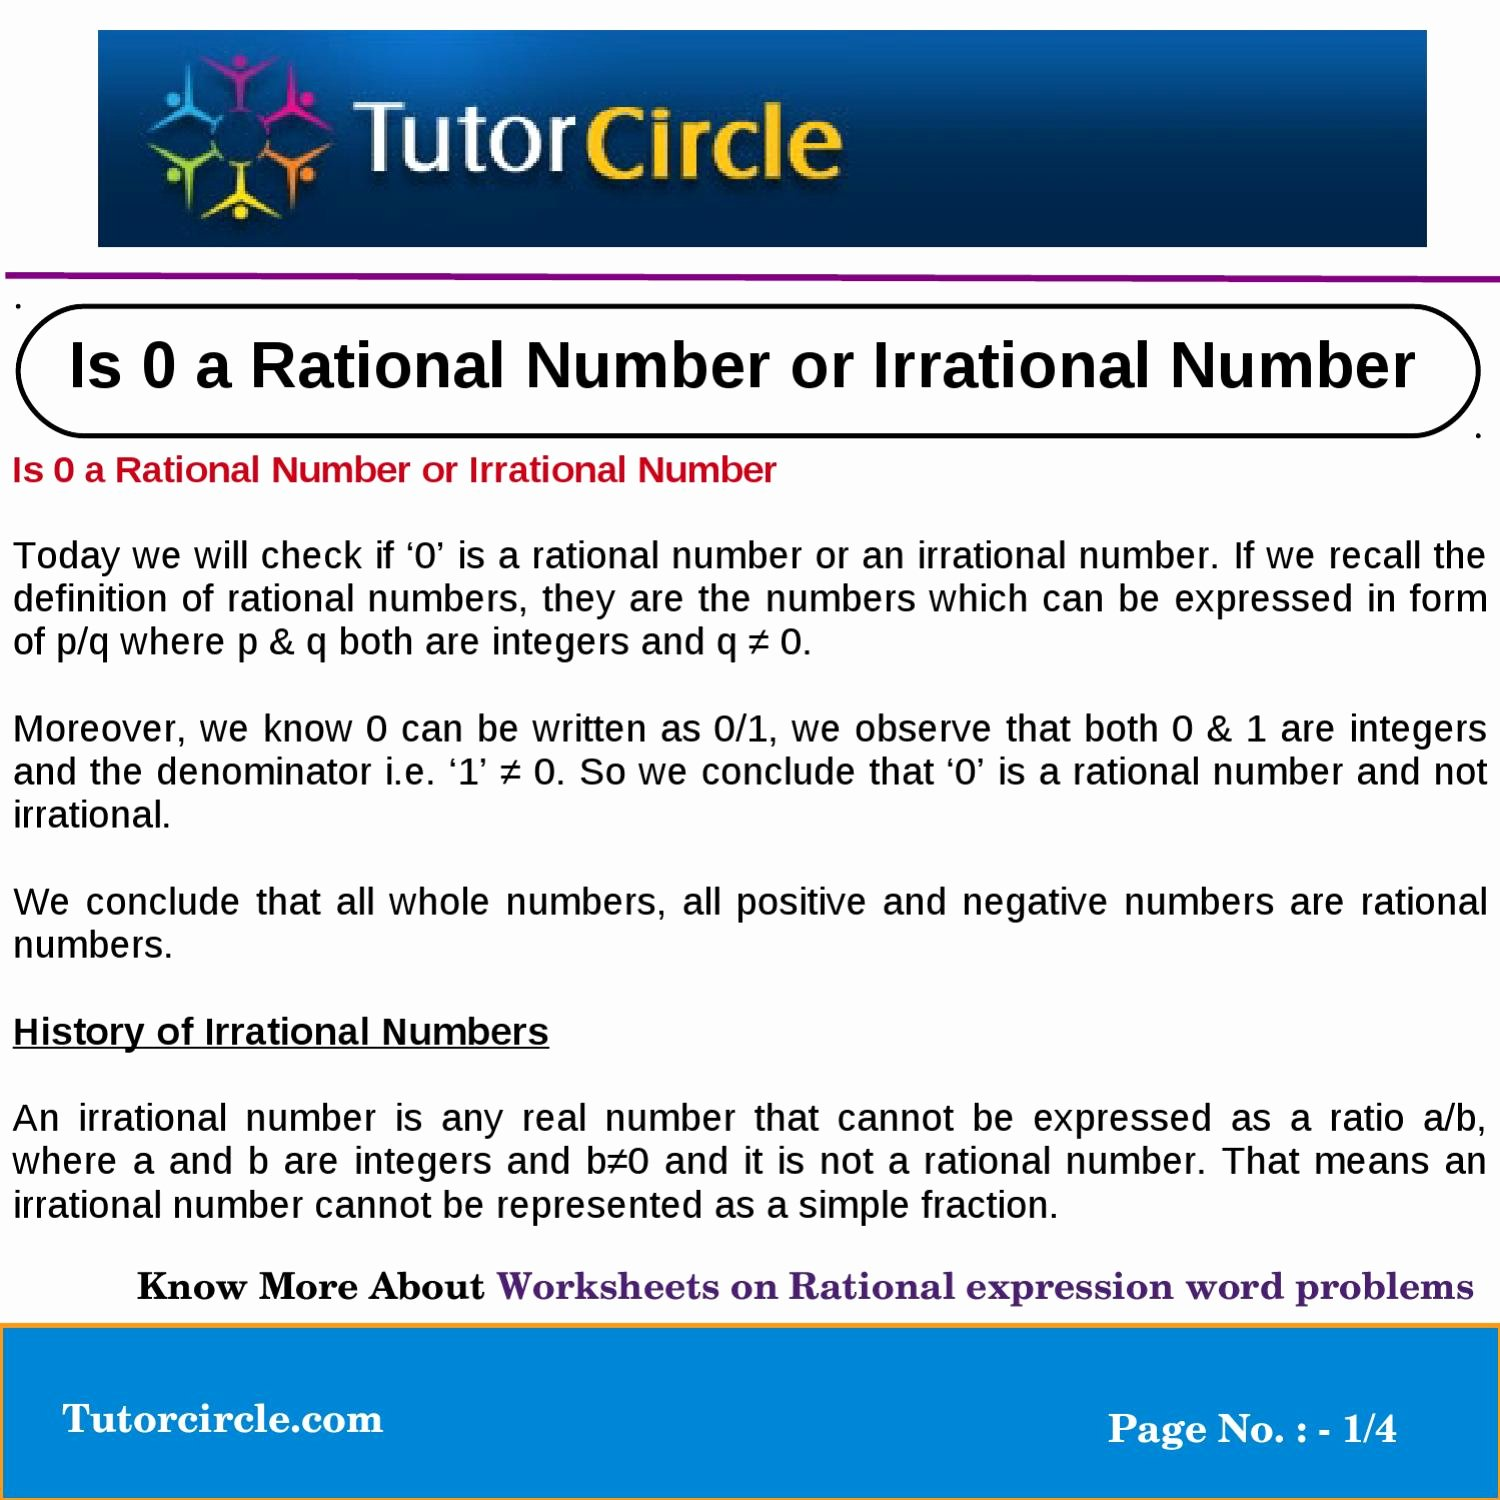 Rational or Irrational Worksheet Elegant is 0 A Rational Number or Irrational Number by Tutorcircle